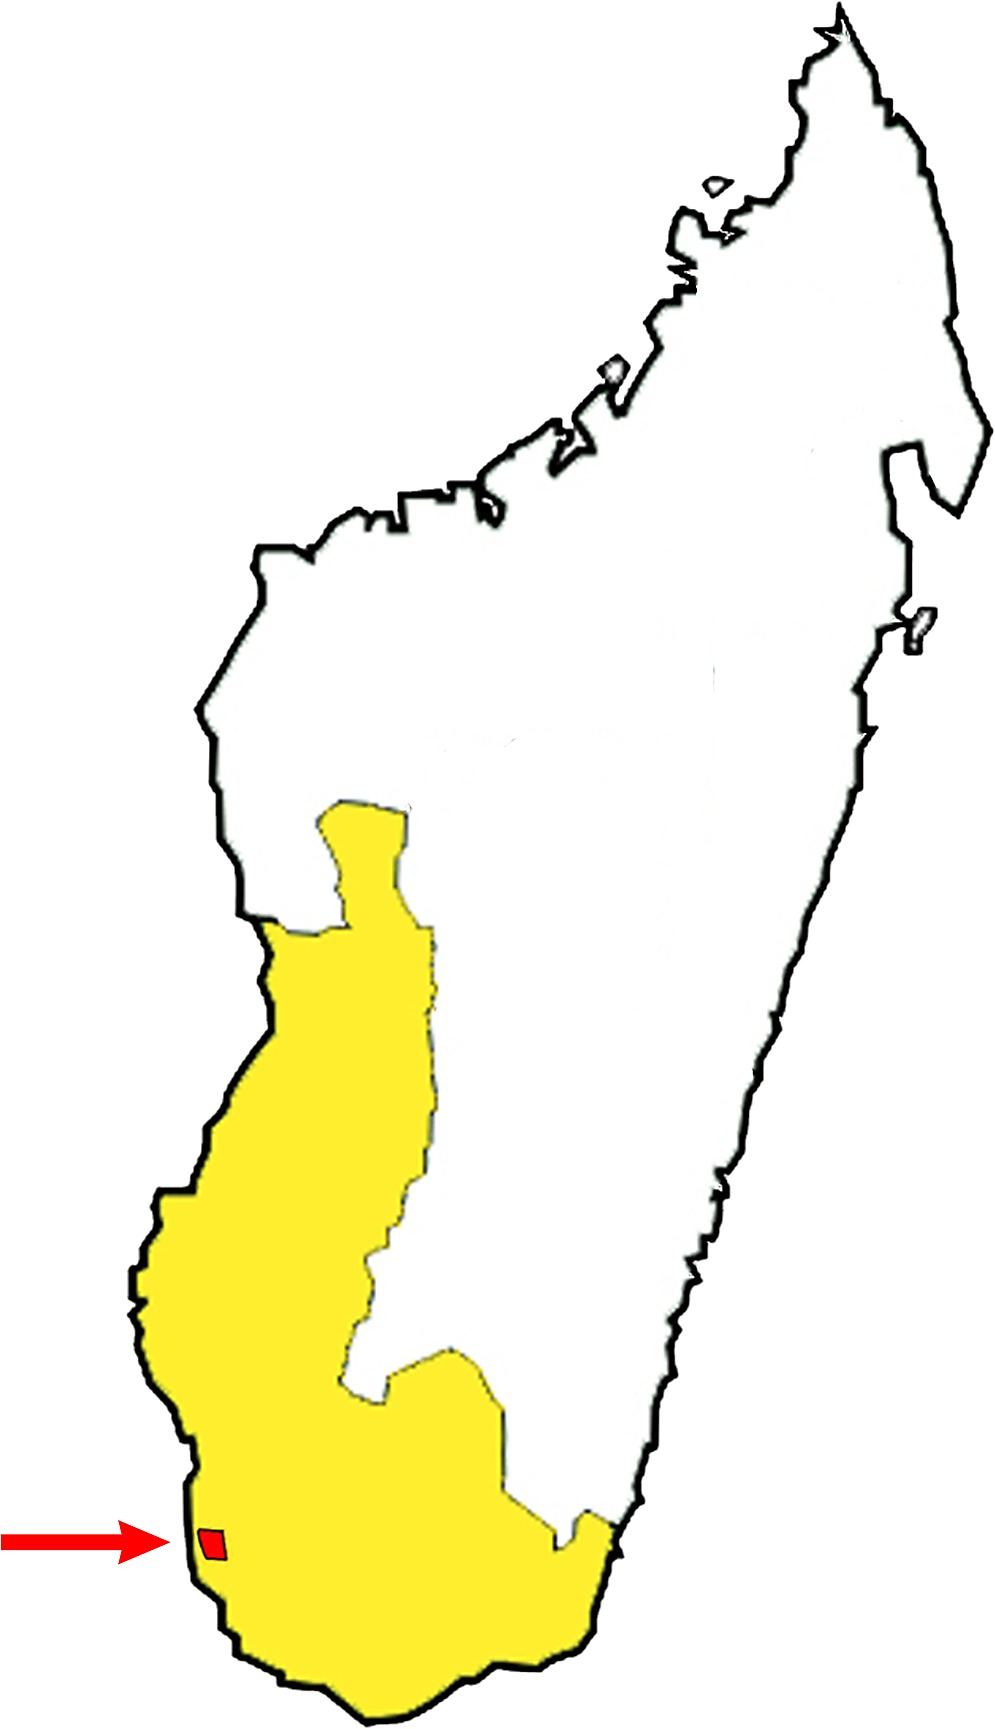 Map of Madagascar, showing the Toliara province (in yellow) and the ...